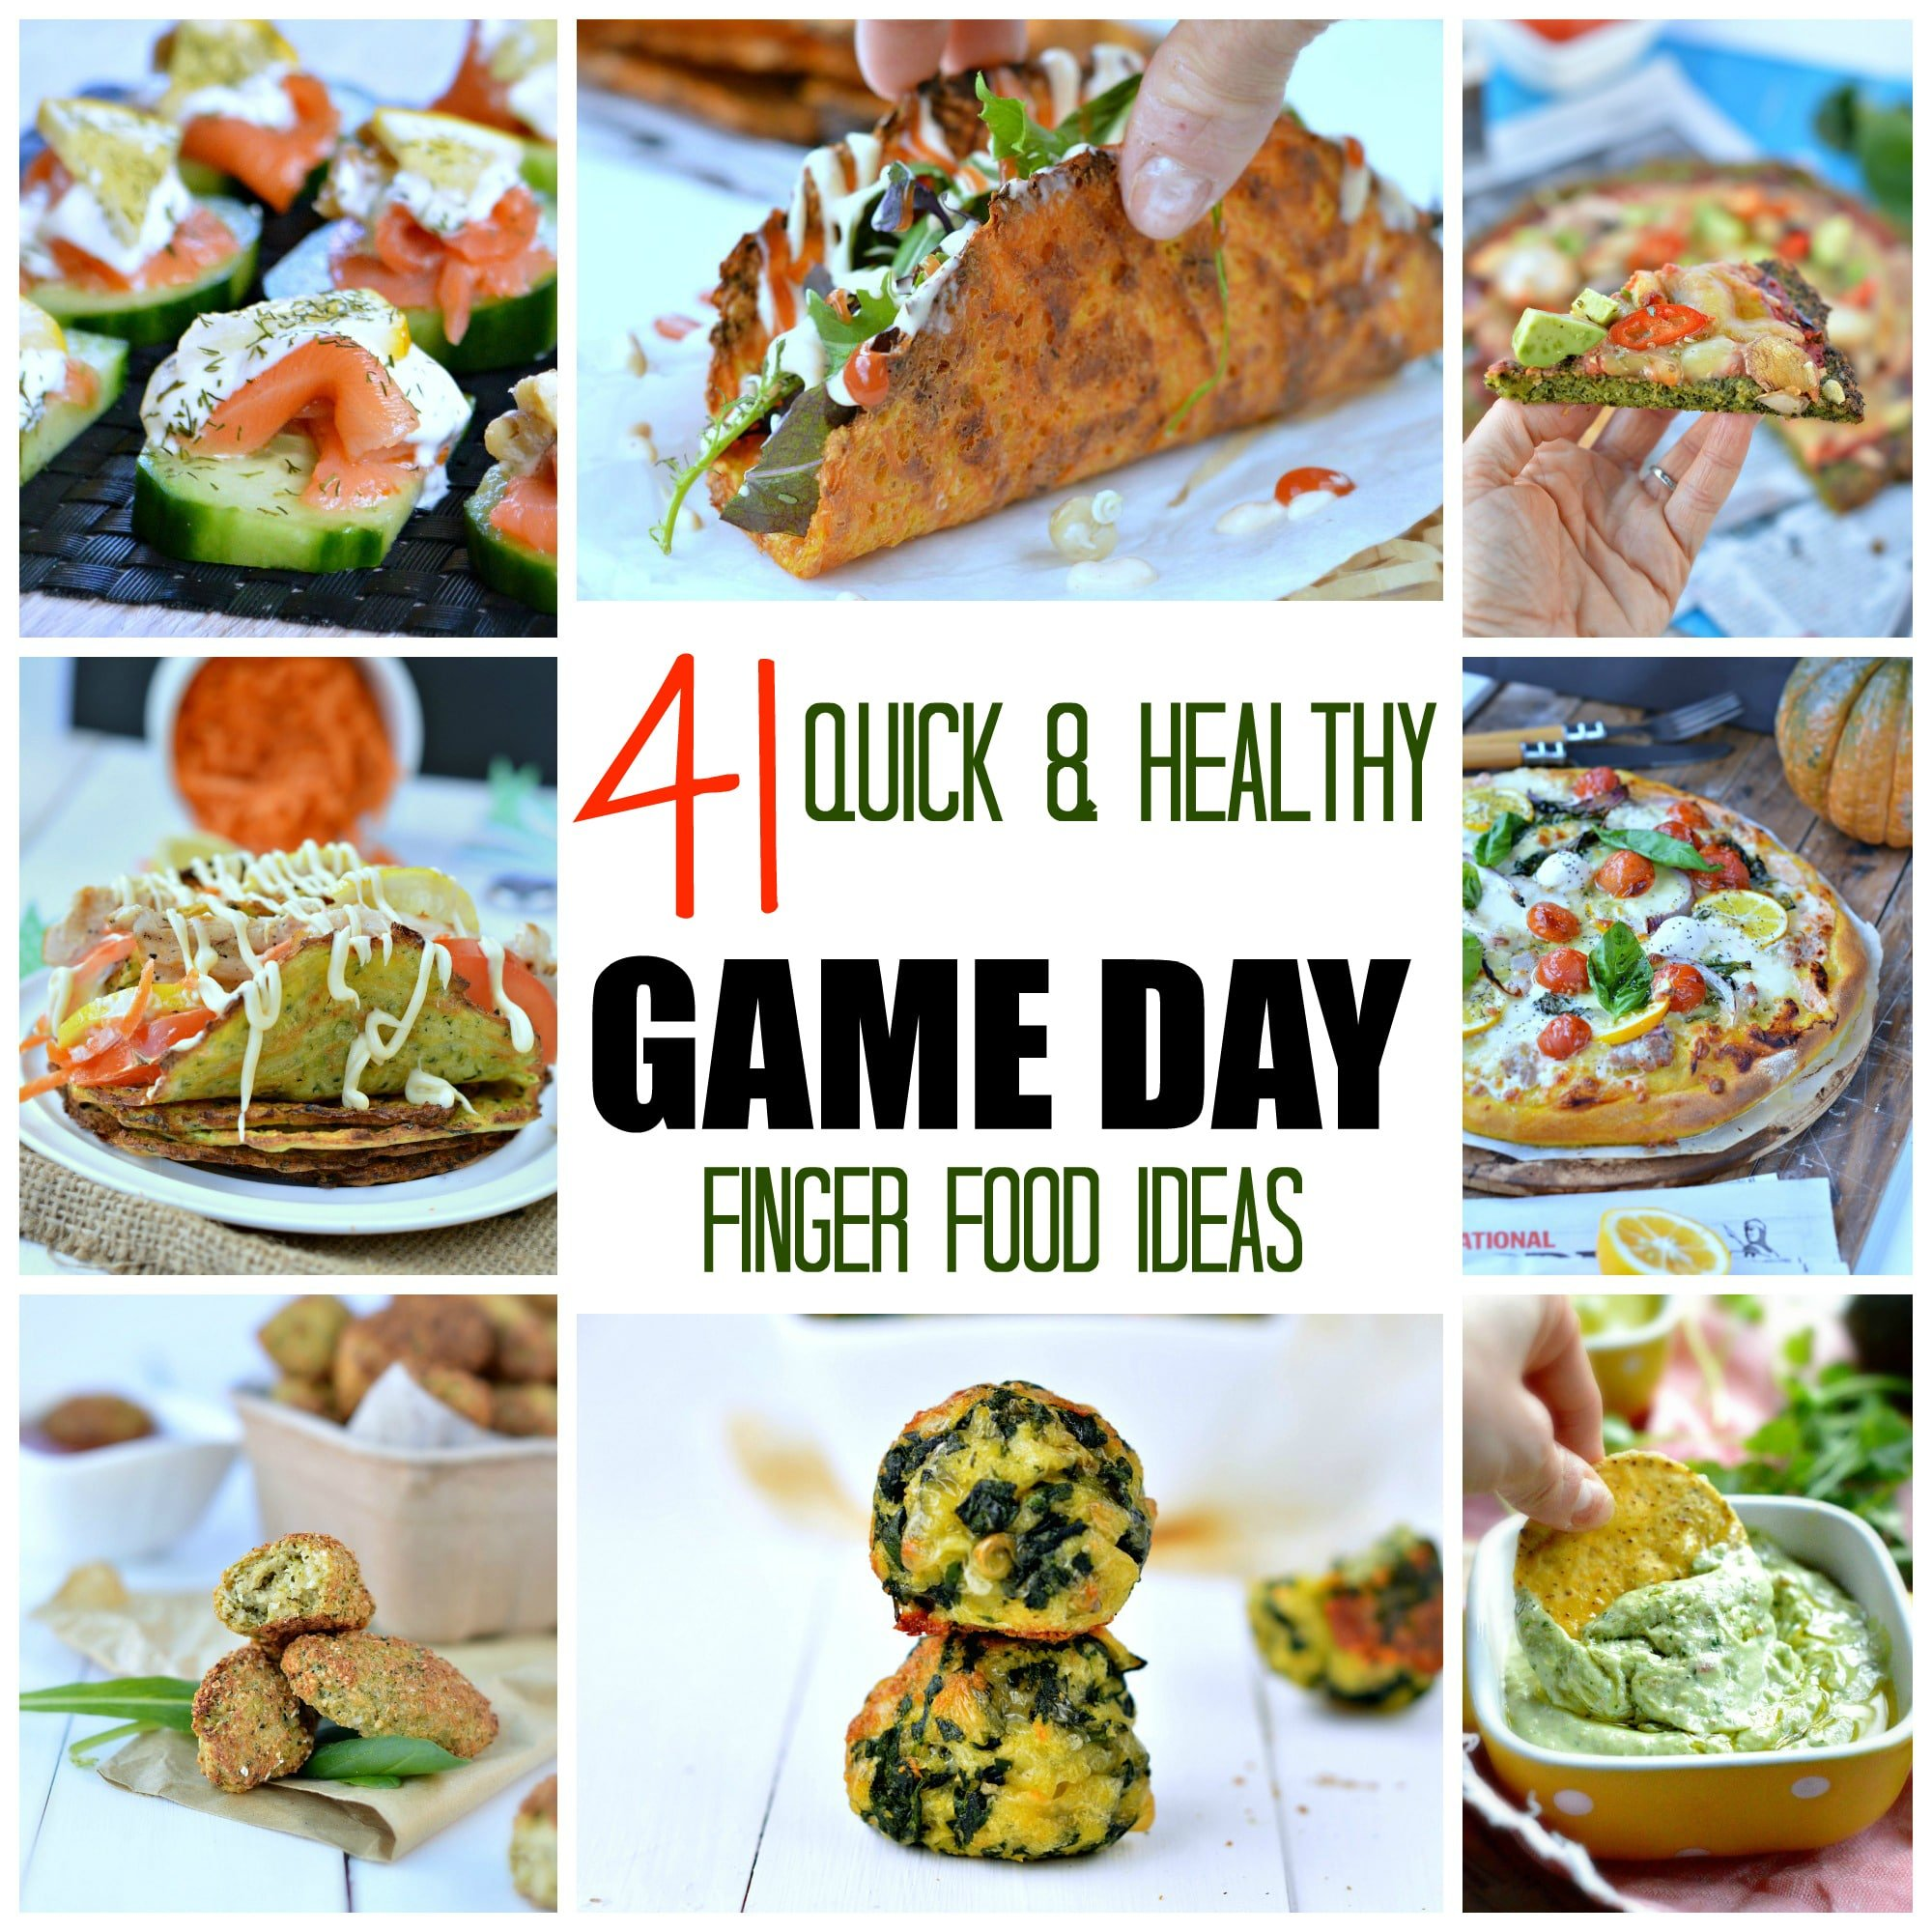 Quick healthy game day finger food sweetashoney quick game day finger food ideas forumfinder Gallery